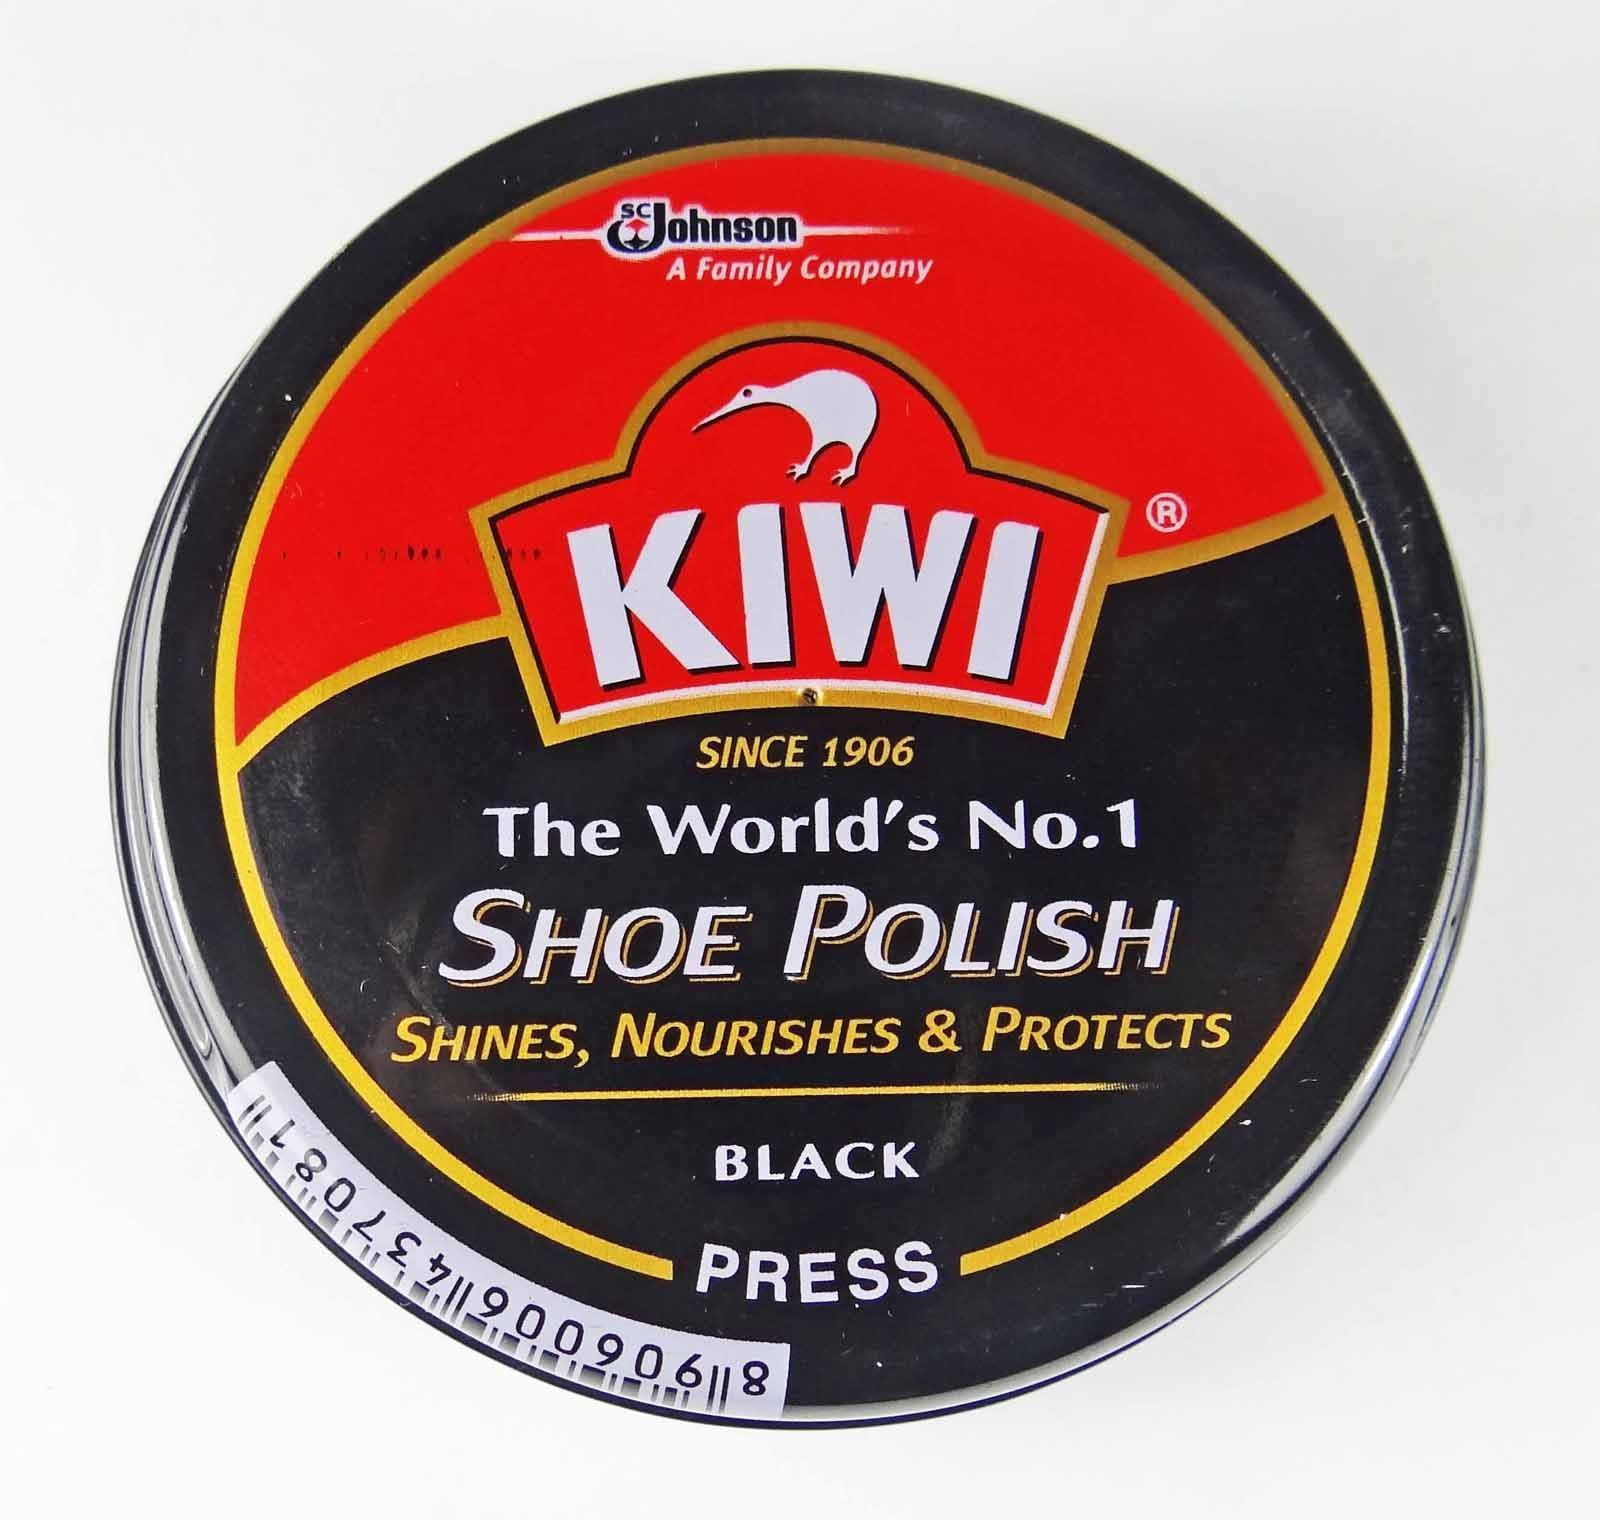 Protects /& nourishes Your Shoes 23g New KIWI Wax Rich Shoe Polish Shines